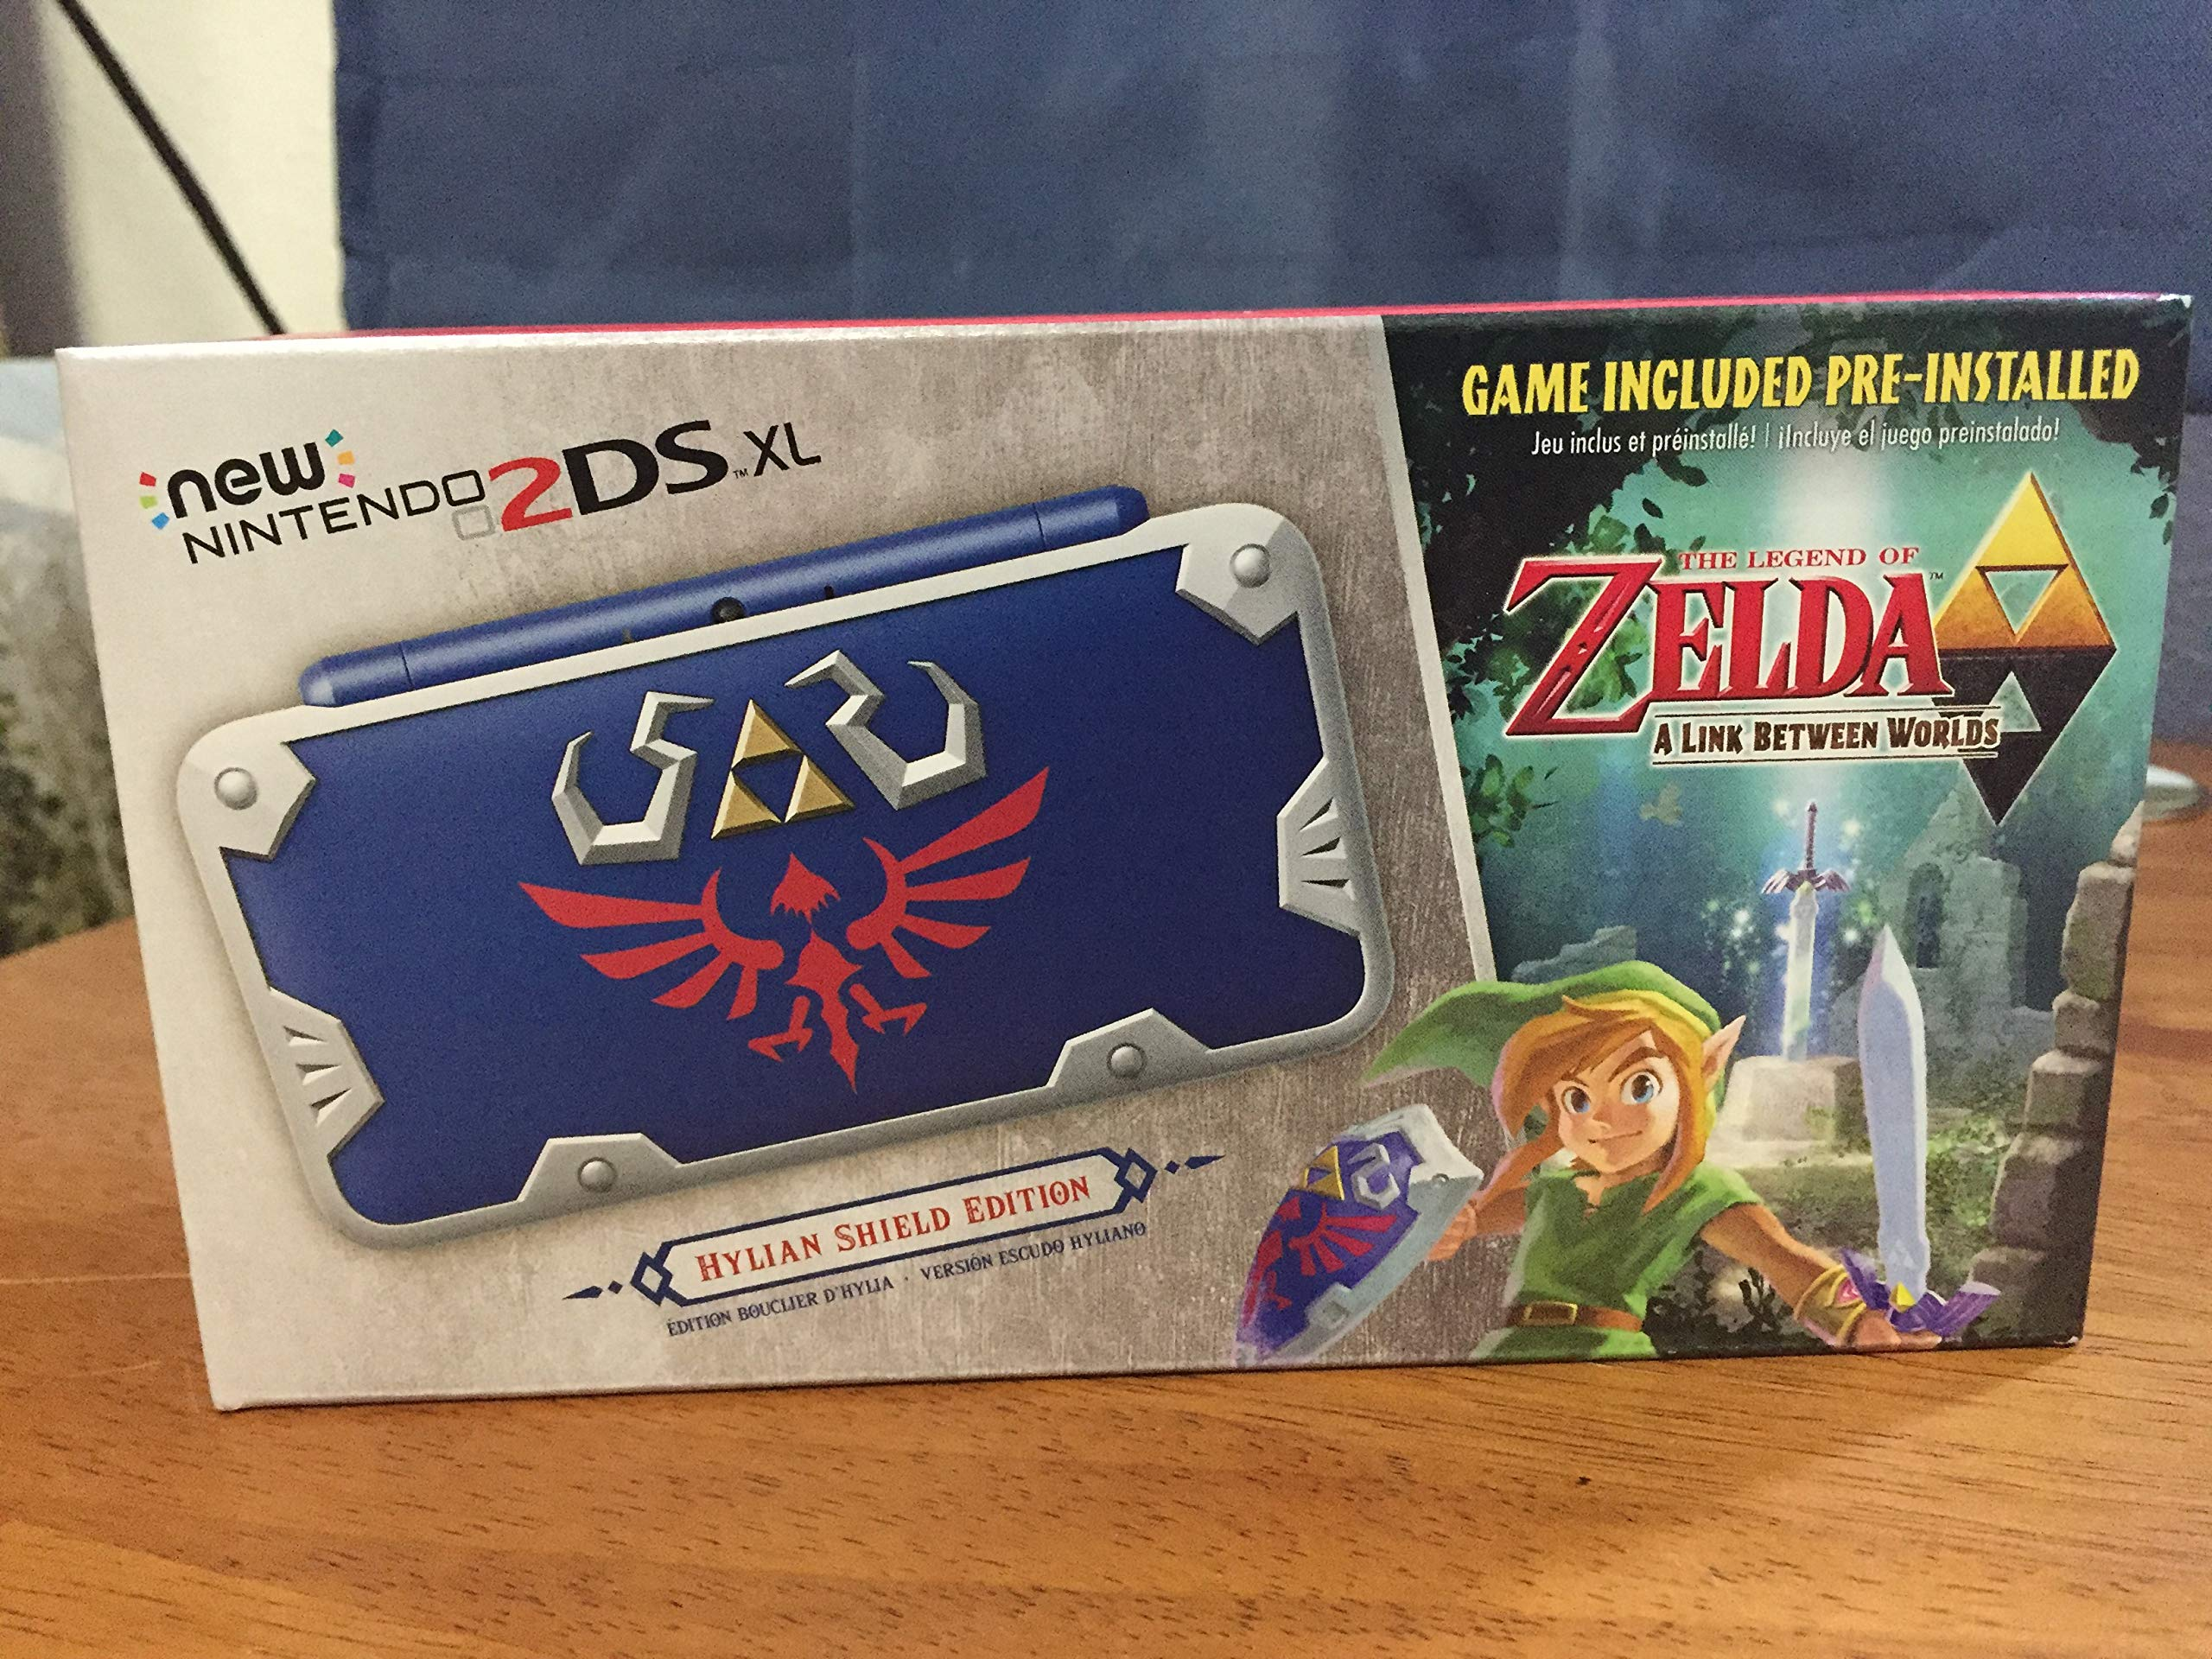 New Nintendo 2DS XL Hylian Shield Ed., w/ Legend of Zelda: A Link Between Worlds by Nintendο (Image #5)